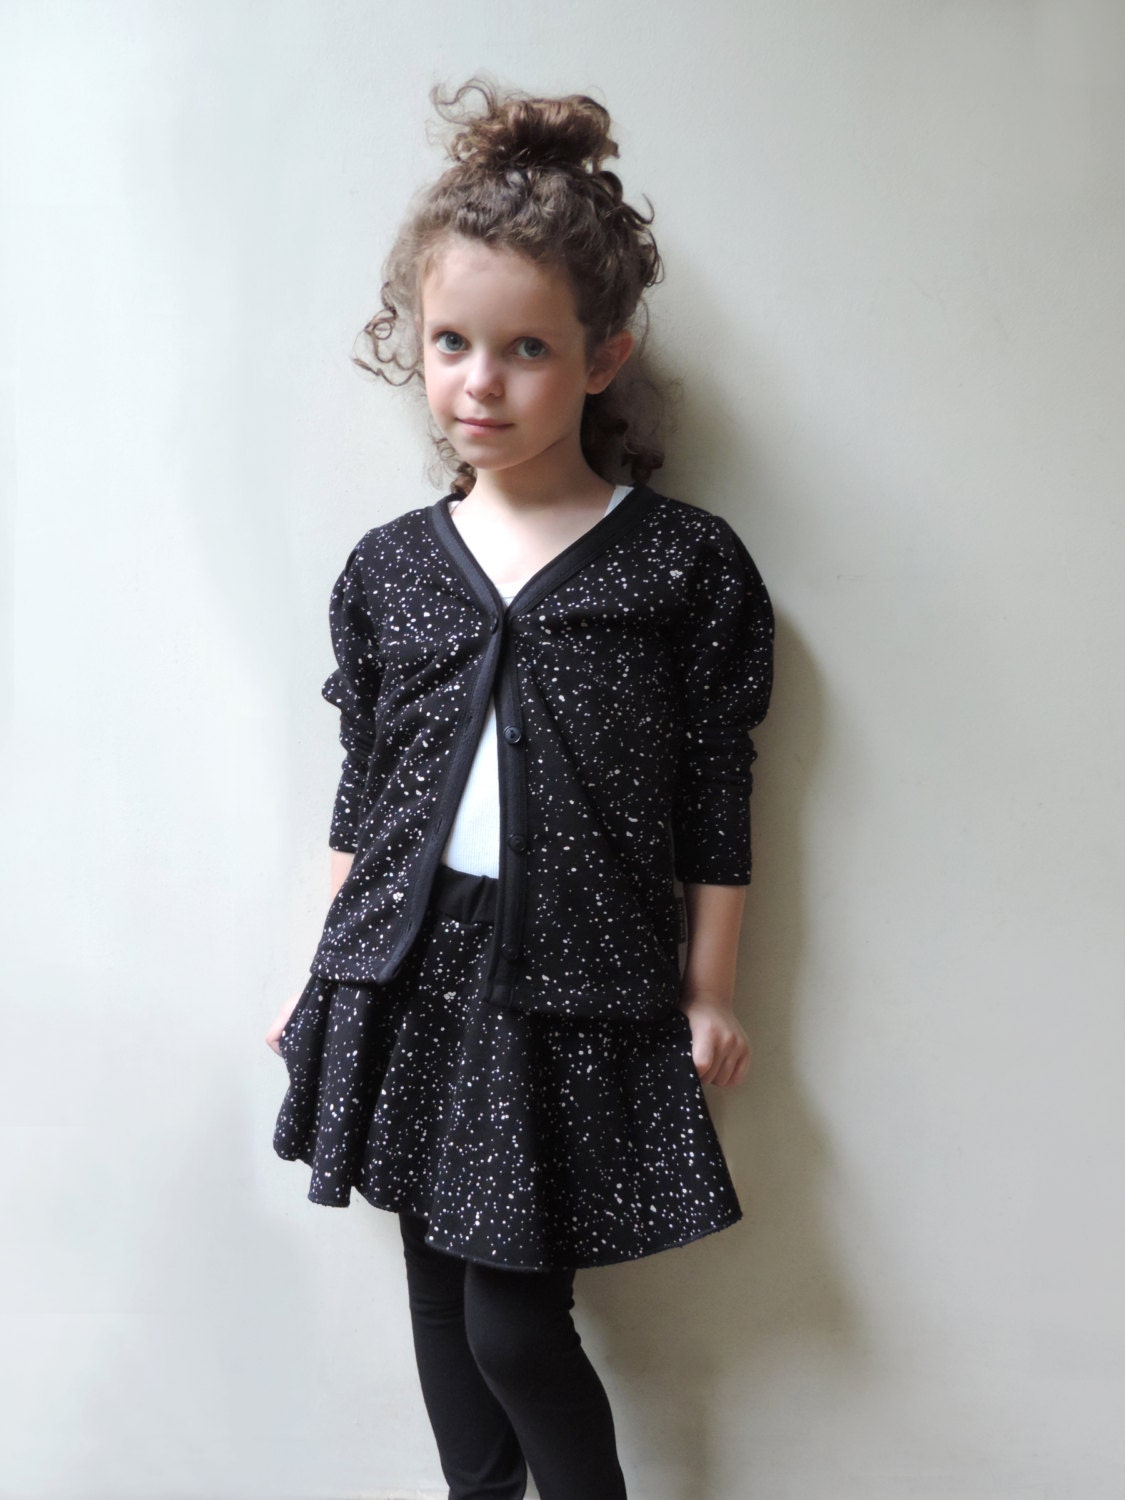 Baby girls will look precious in a festive party dress and matching cardigan. A great thing about these dress and cardigan sets is the many new outfits you can .